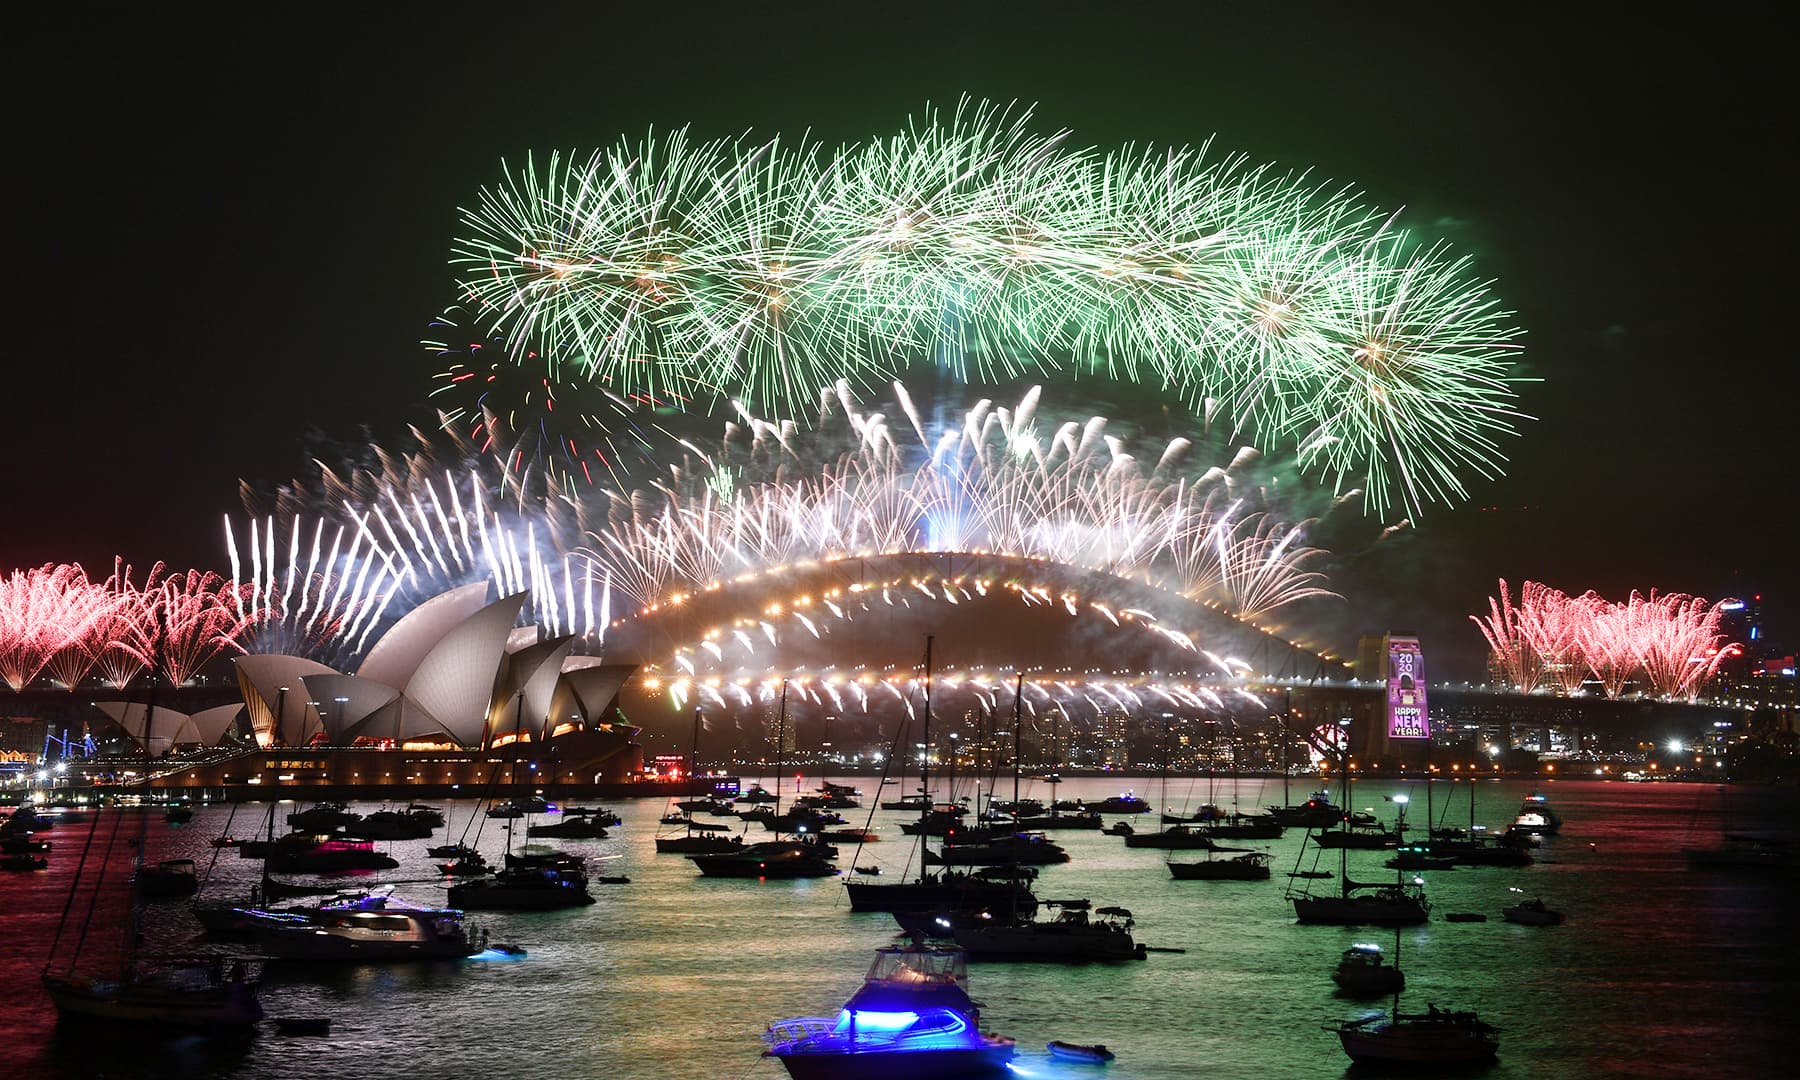 The midnight fireworks are seen from Mrs Macquarie's Chair during New Year's Eve celebrations in Sydney, Australia, January 1, 2020. — Reuters